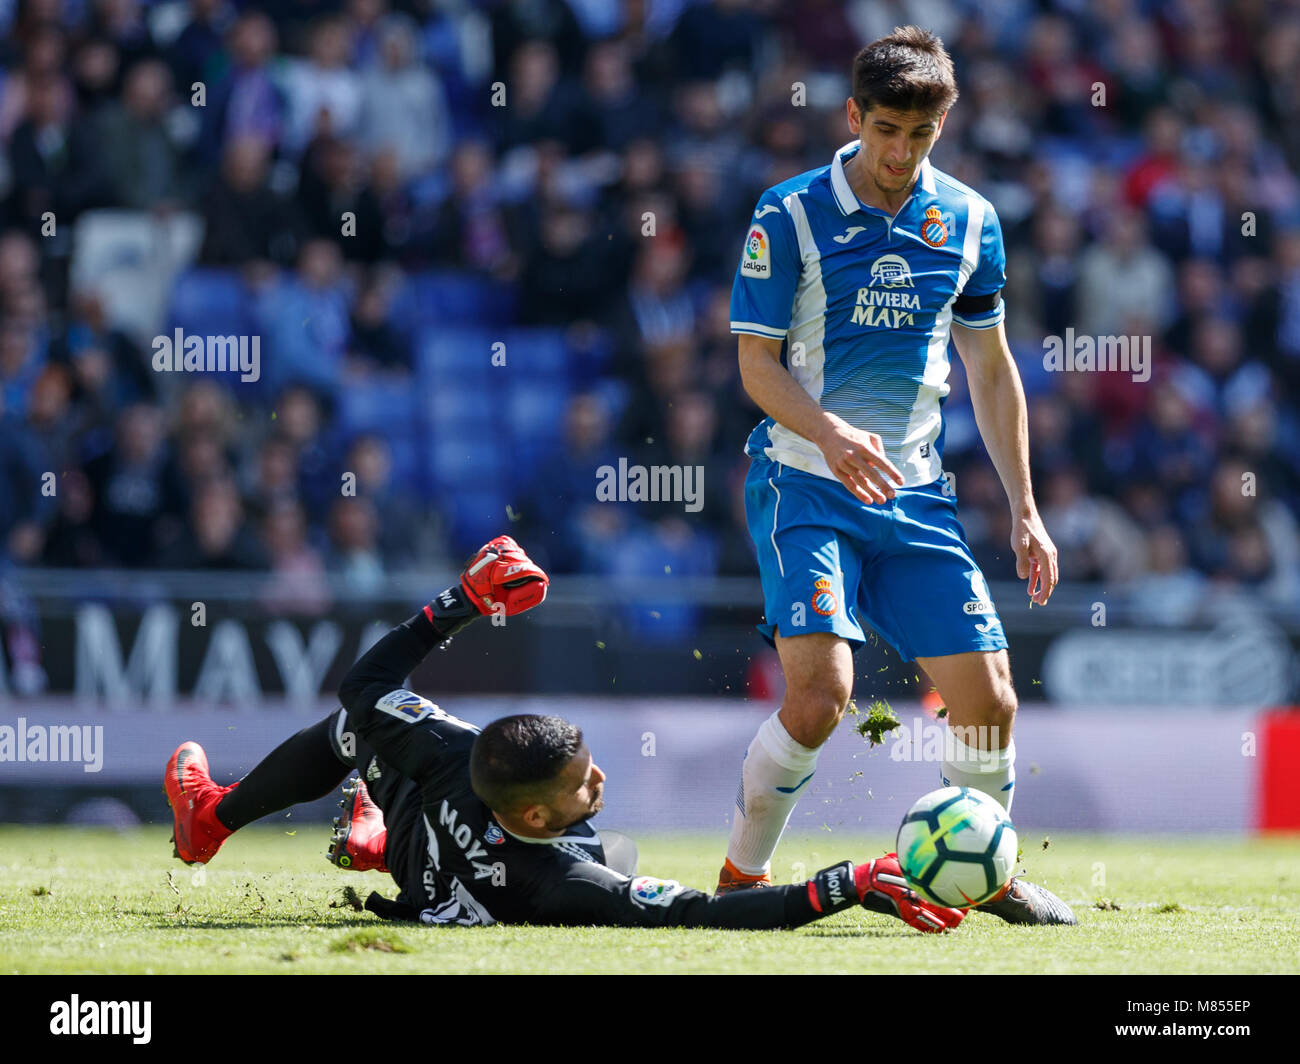 BARCELONA, SPAIN - MARCH 11:  Gerard Moreno, #7 of RCD Espanyol in action with Moya, #25 of Real Sociedad during - Stock Image